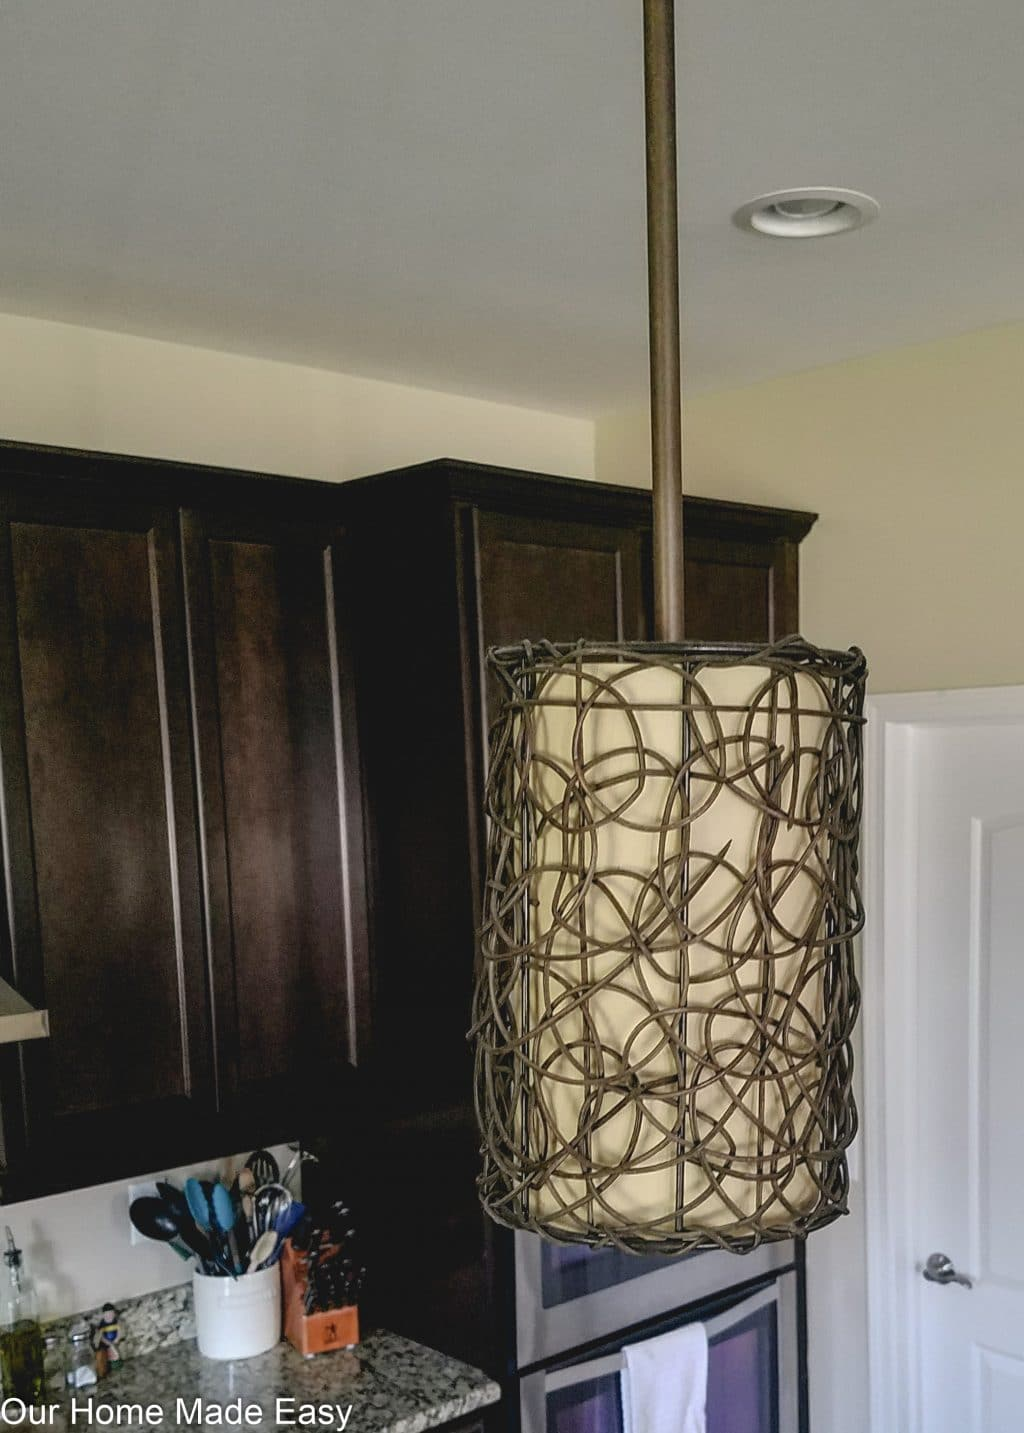 This dark and sharp kitchen island pendant lighting didn't give us enough light